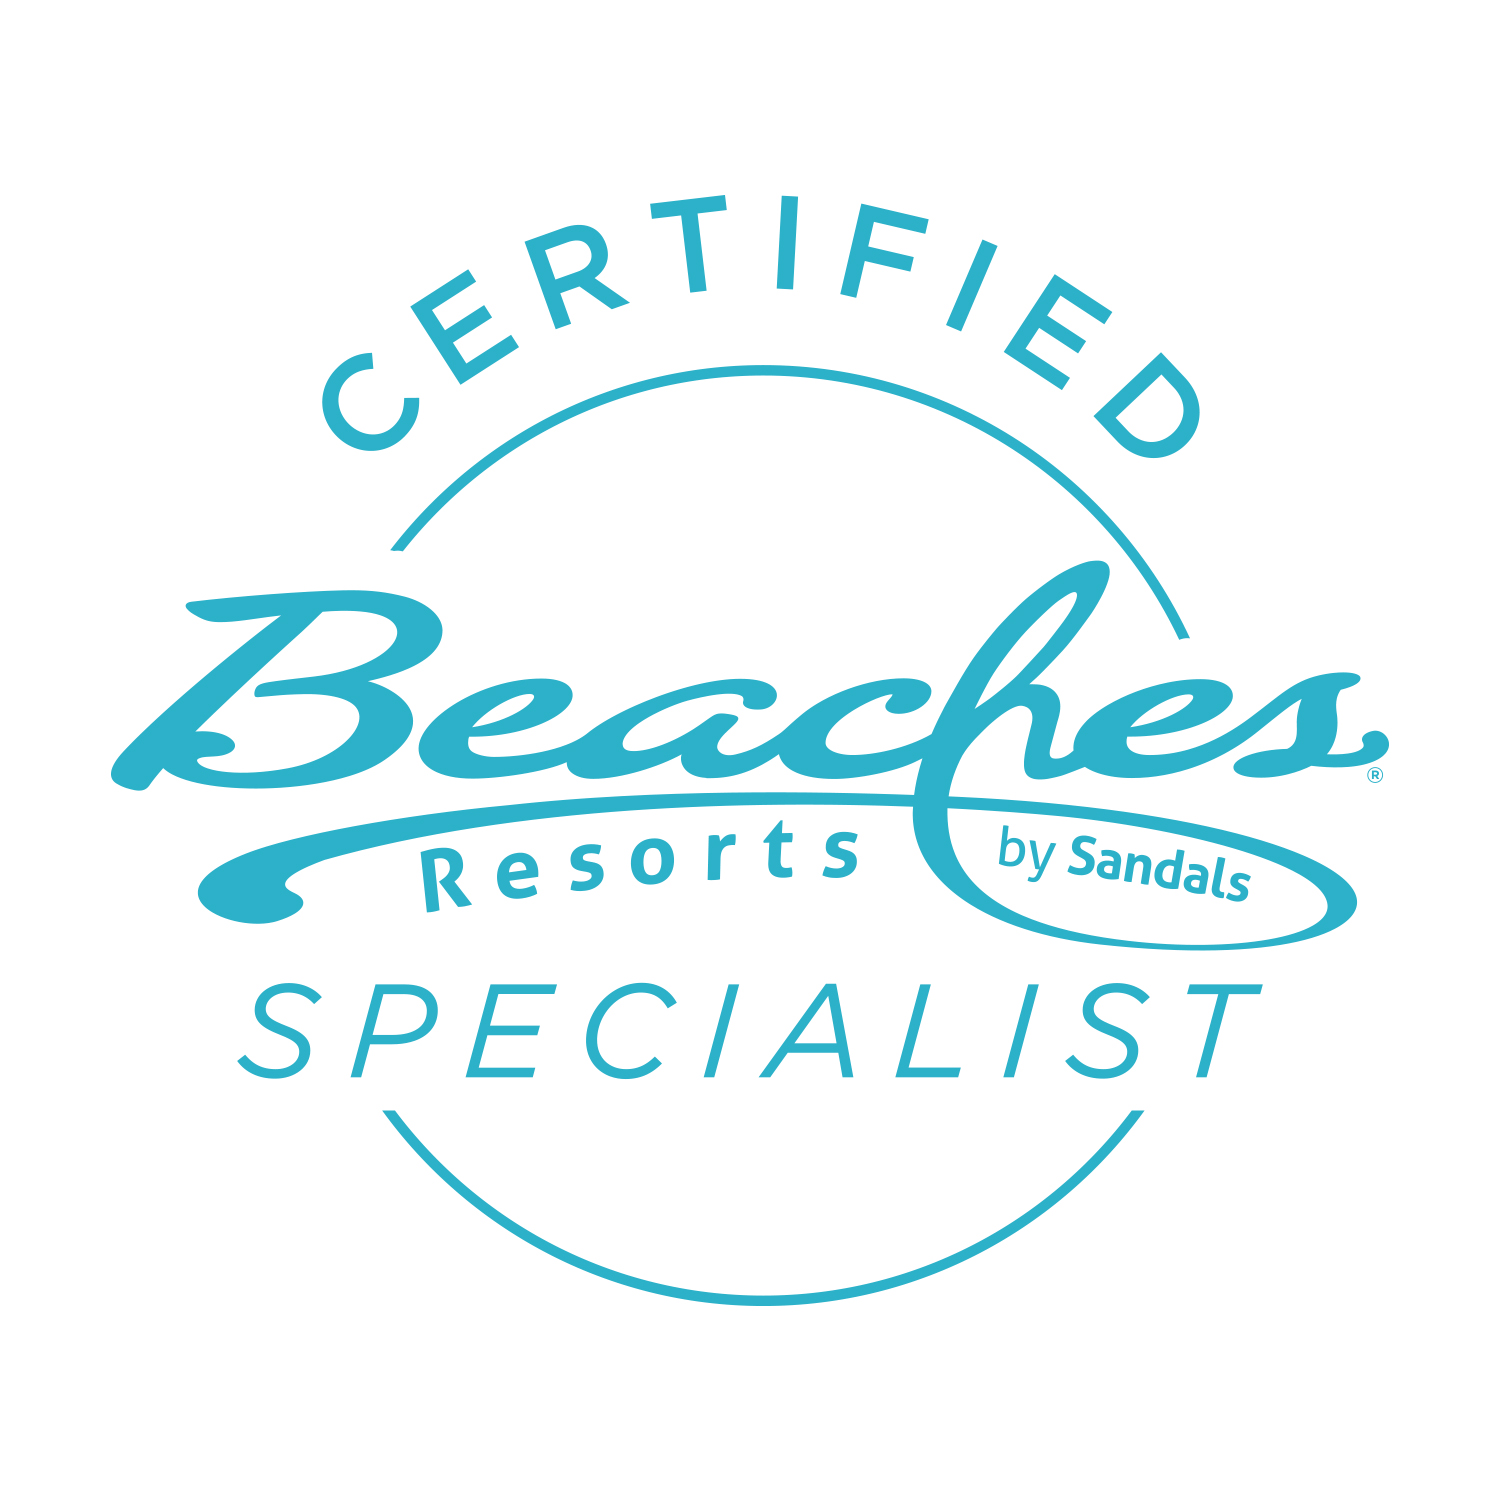 Certified Beaches Specialist